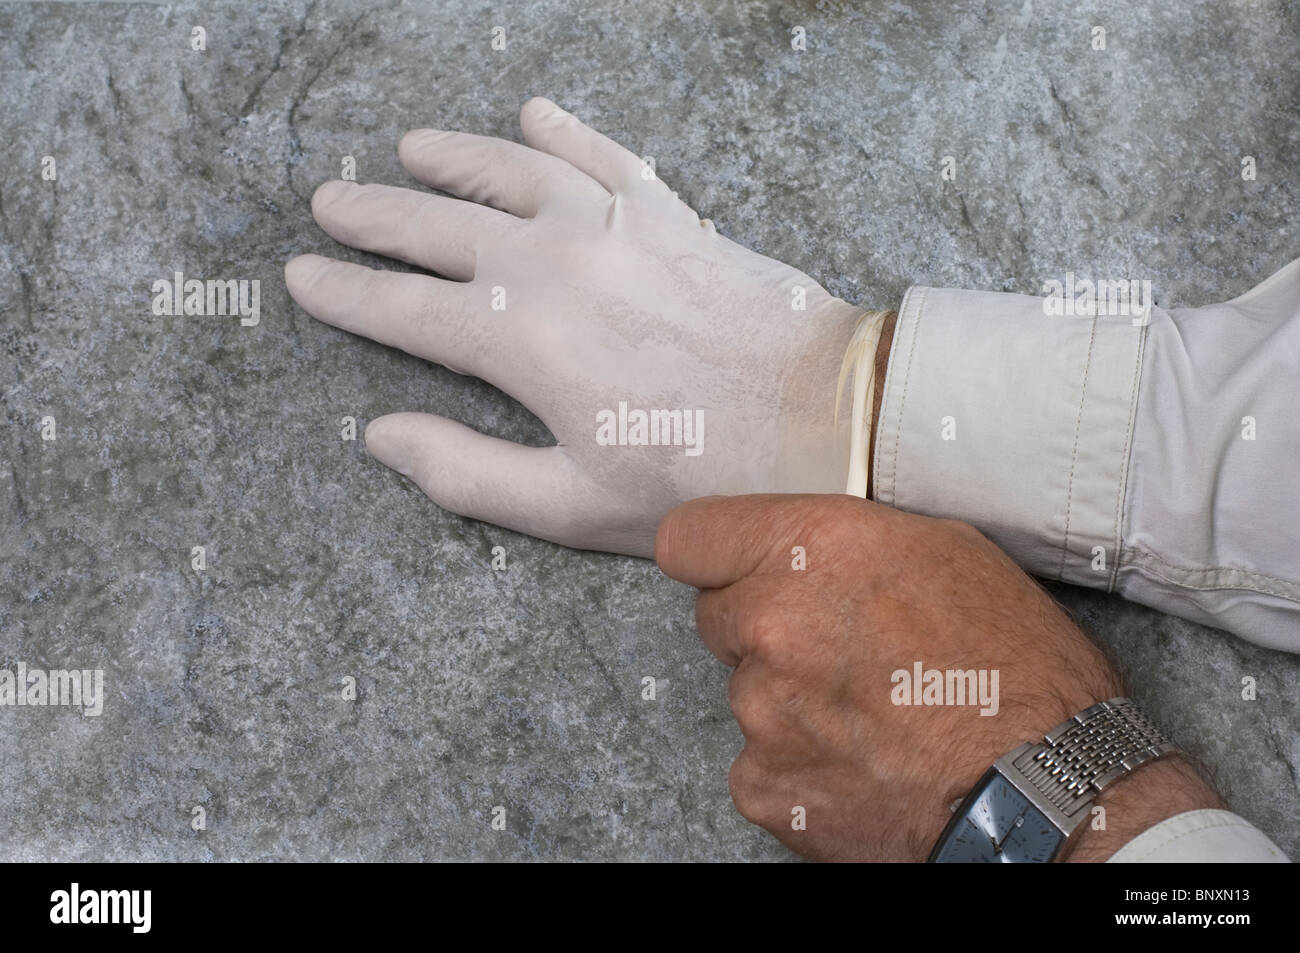 Putting on medical latex rubber gloves - Stock Image